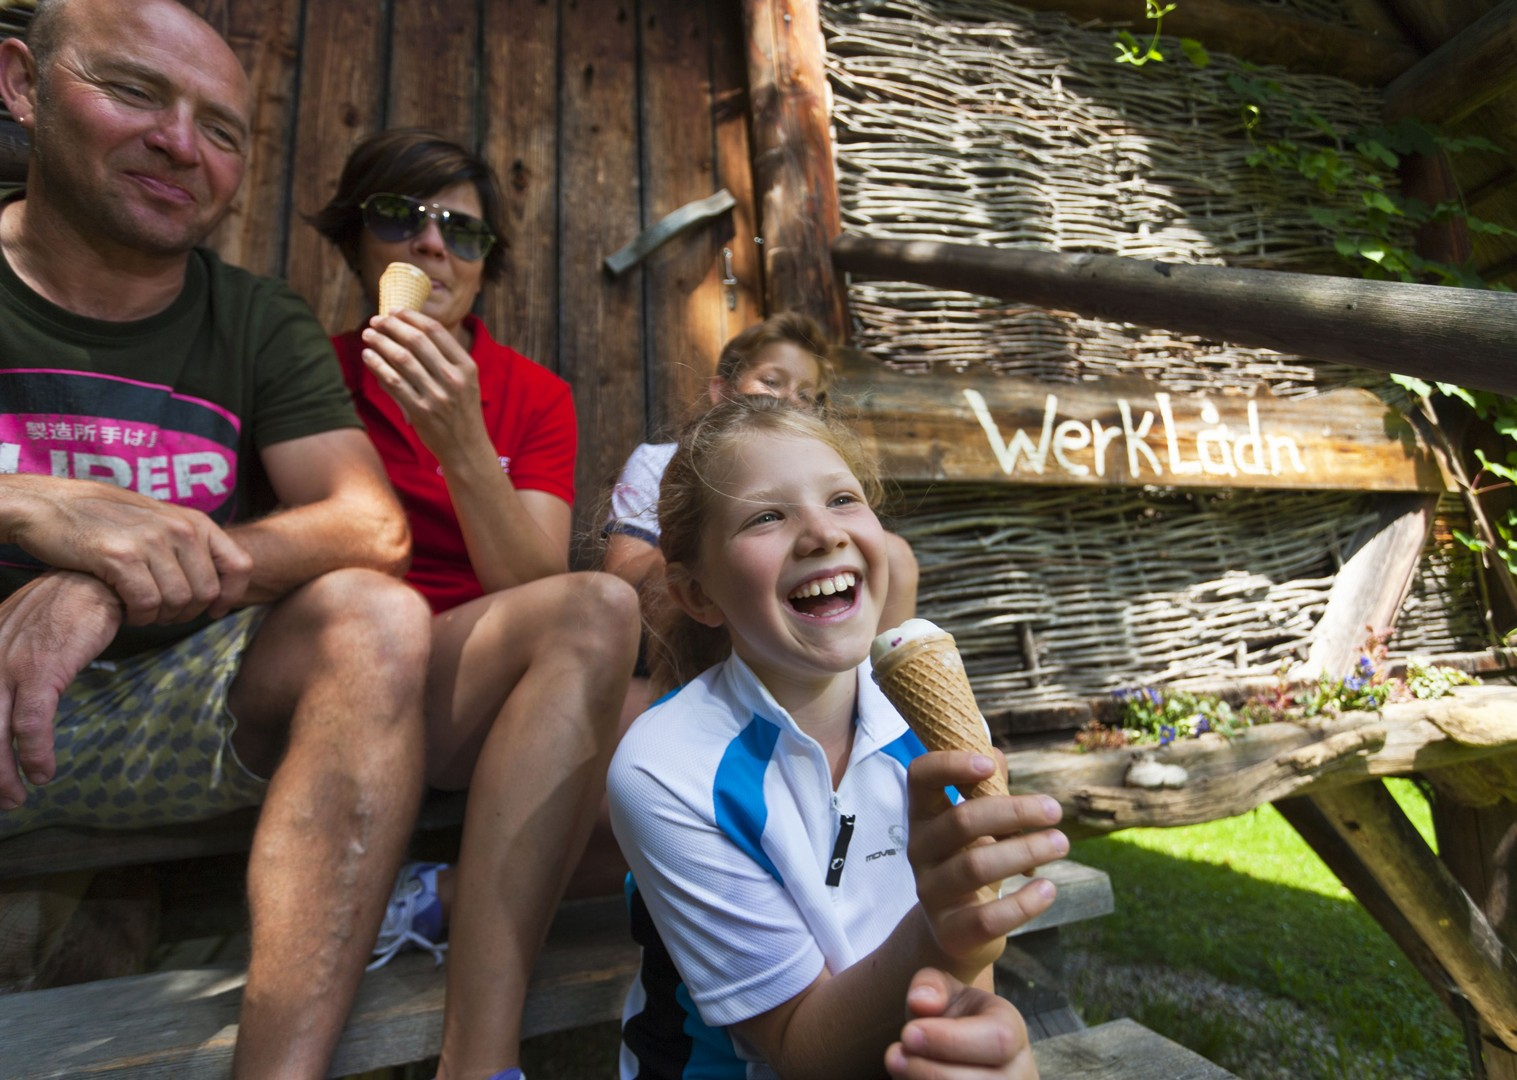 self-guided-family-cycling-holiday-austrian-lakes-austria.jpg - Austria - Salzburg's Lake District - Self-Guided Family Cycling Holiday - Family Cycling